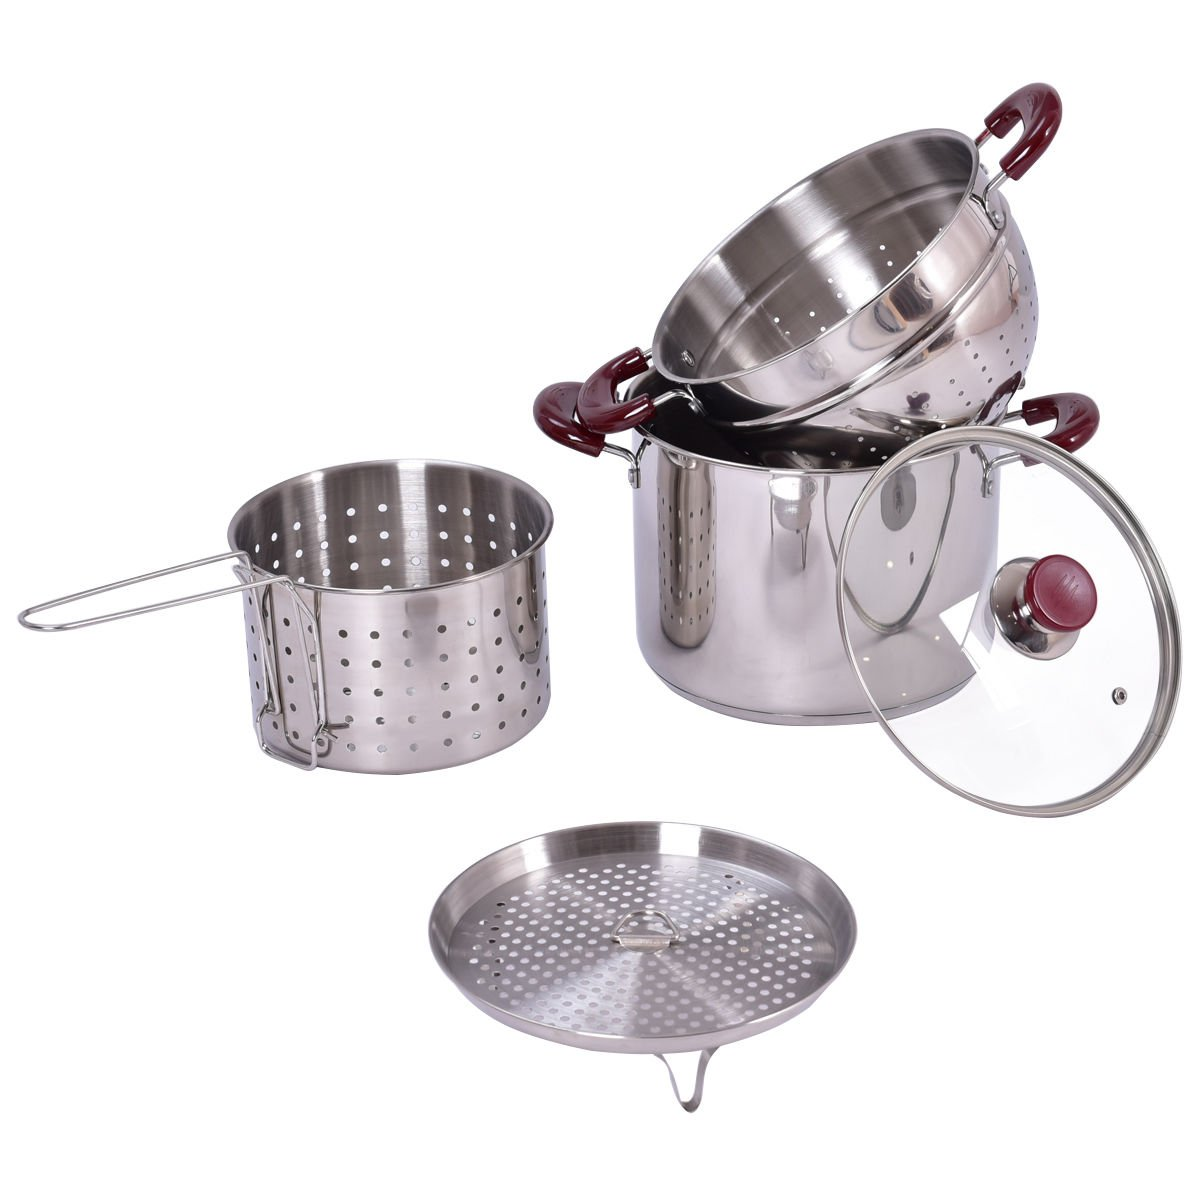 lunanice 5PC Stainless Steel Stock Pot 7-Quart Pasta Cooker Set w/Lid and Steamer Inserts